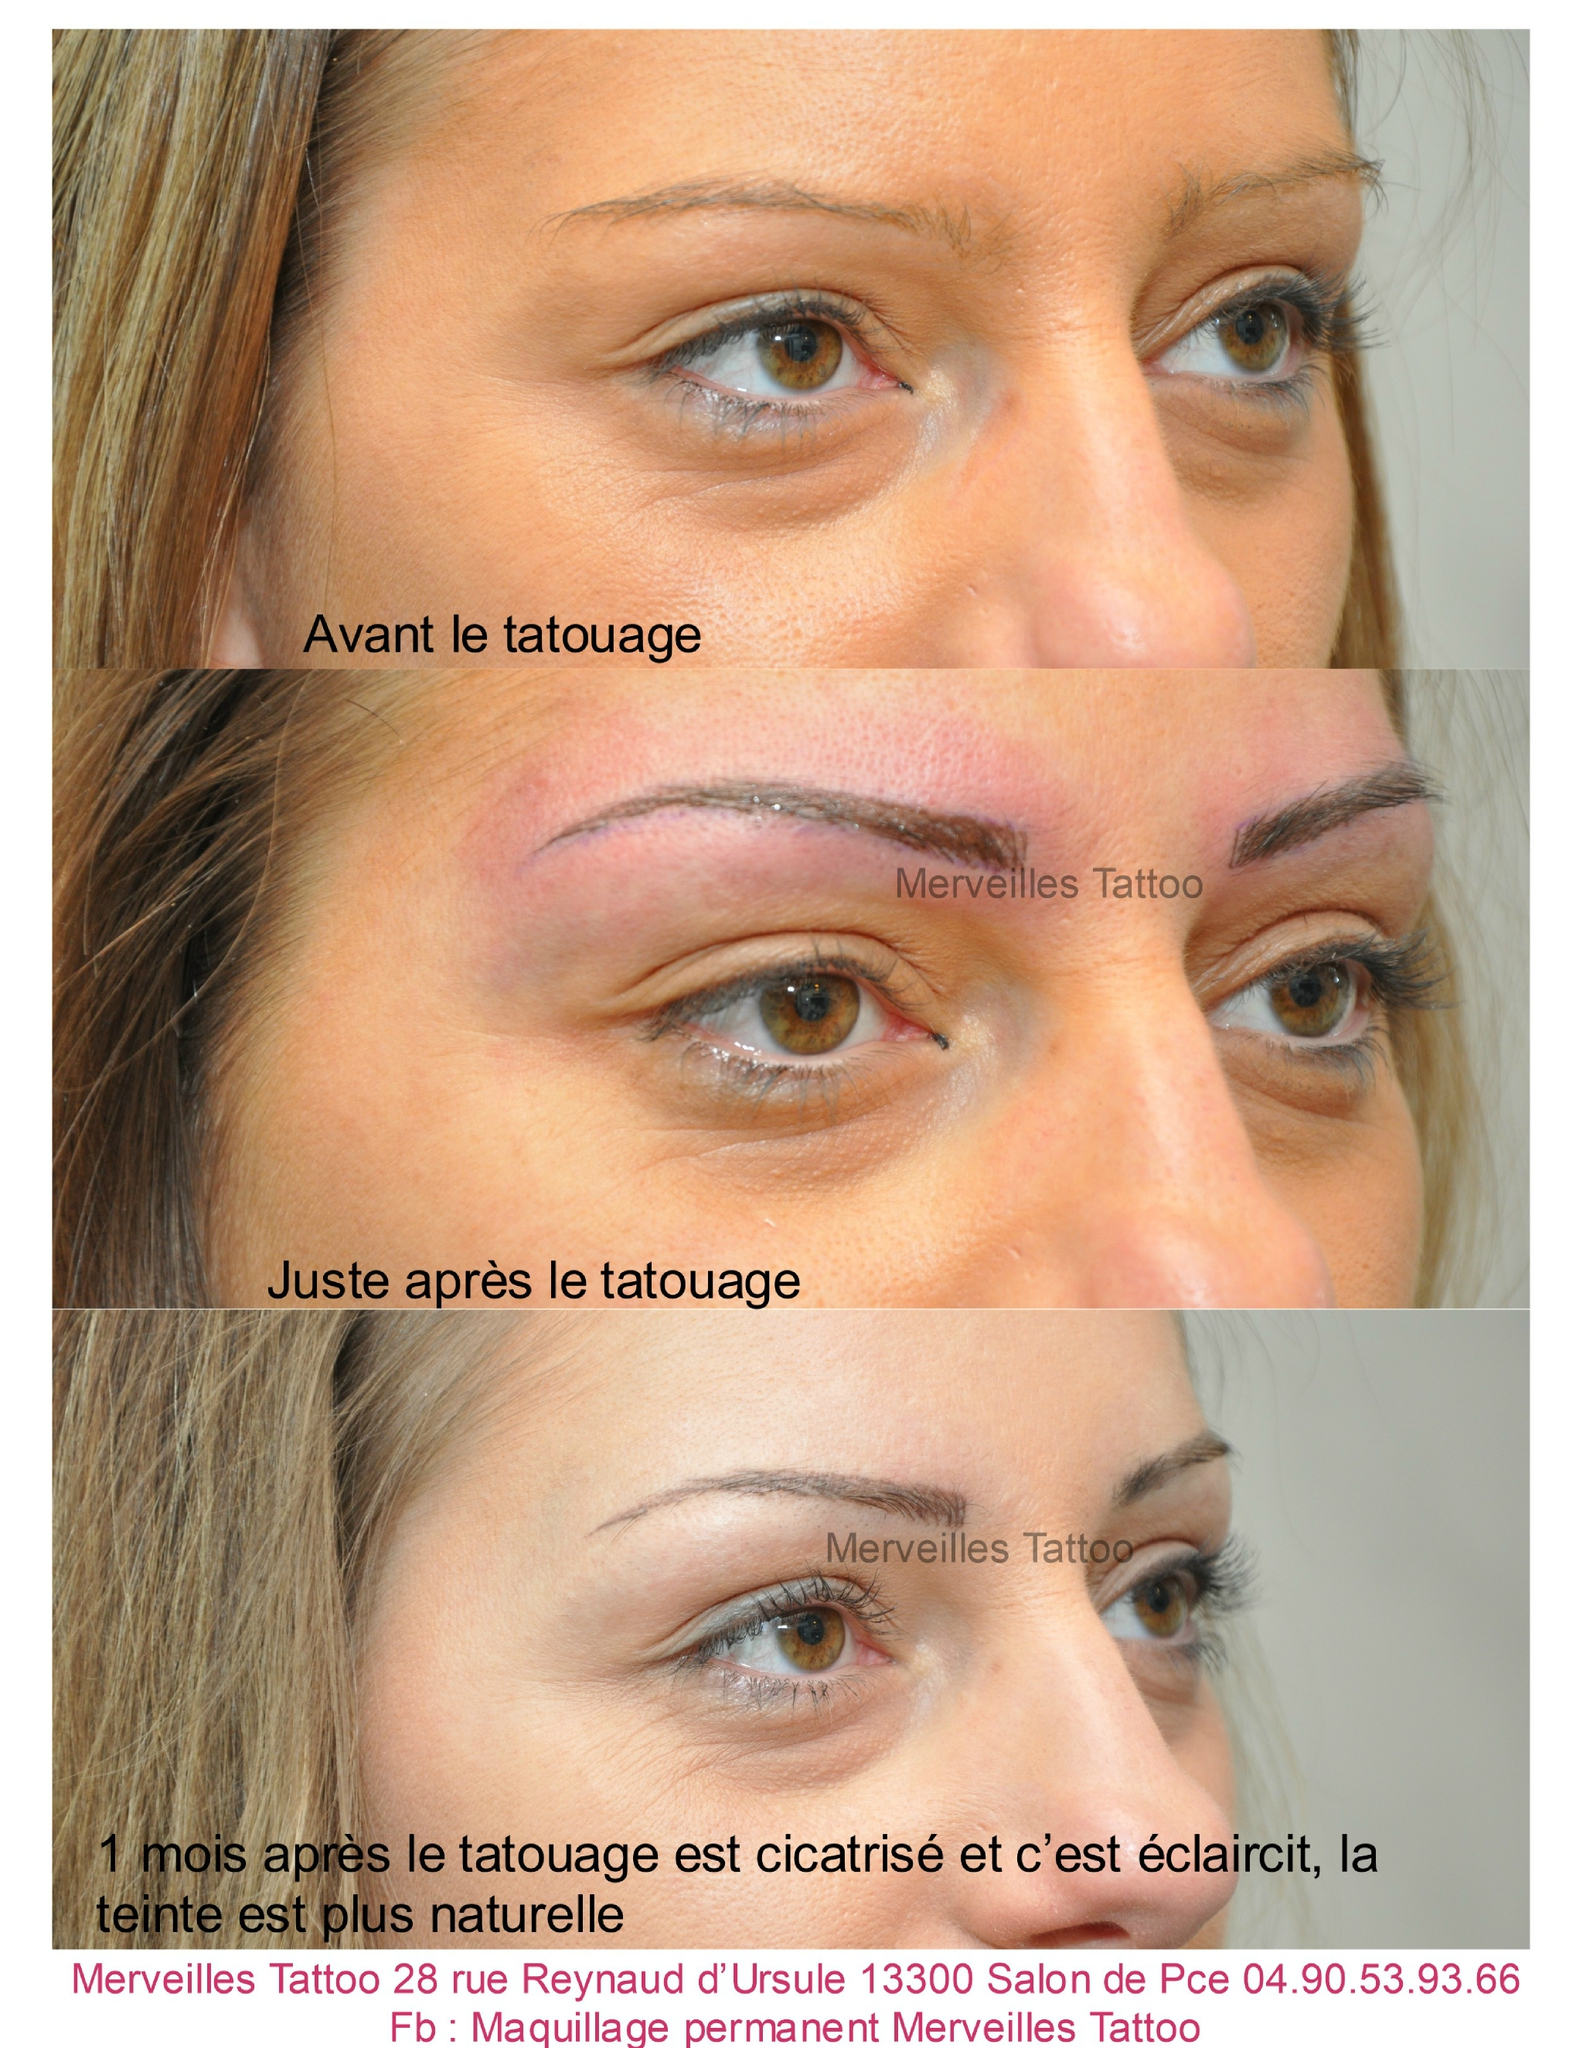 Merveilles tattoo - Maquillage permanent sourcil poil poil ...